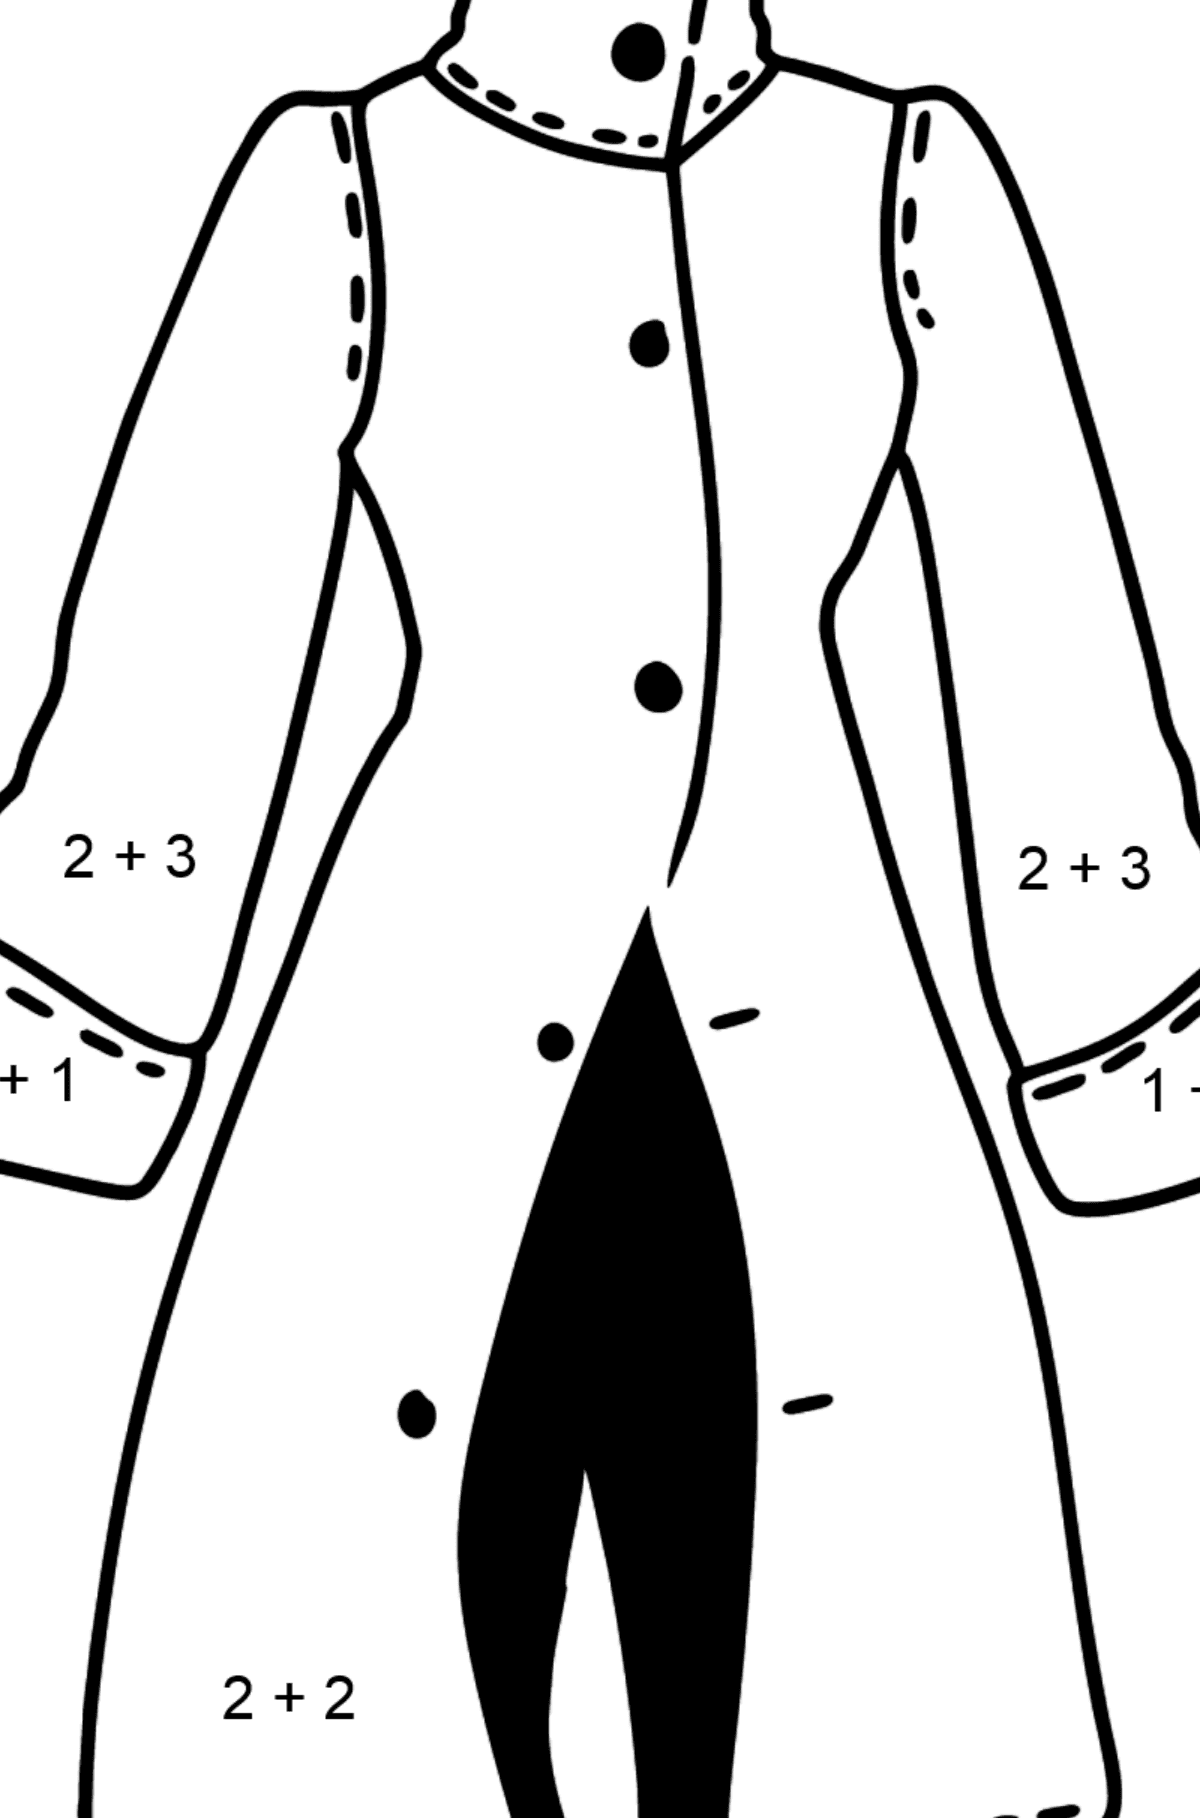 Coat coloring page - Math Coloring - Addition for Kids